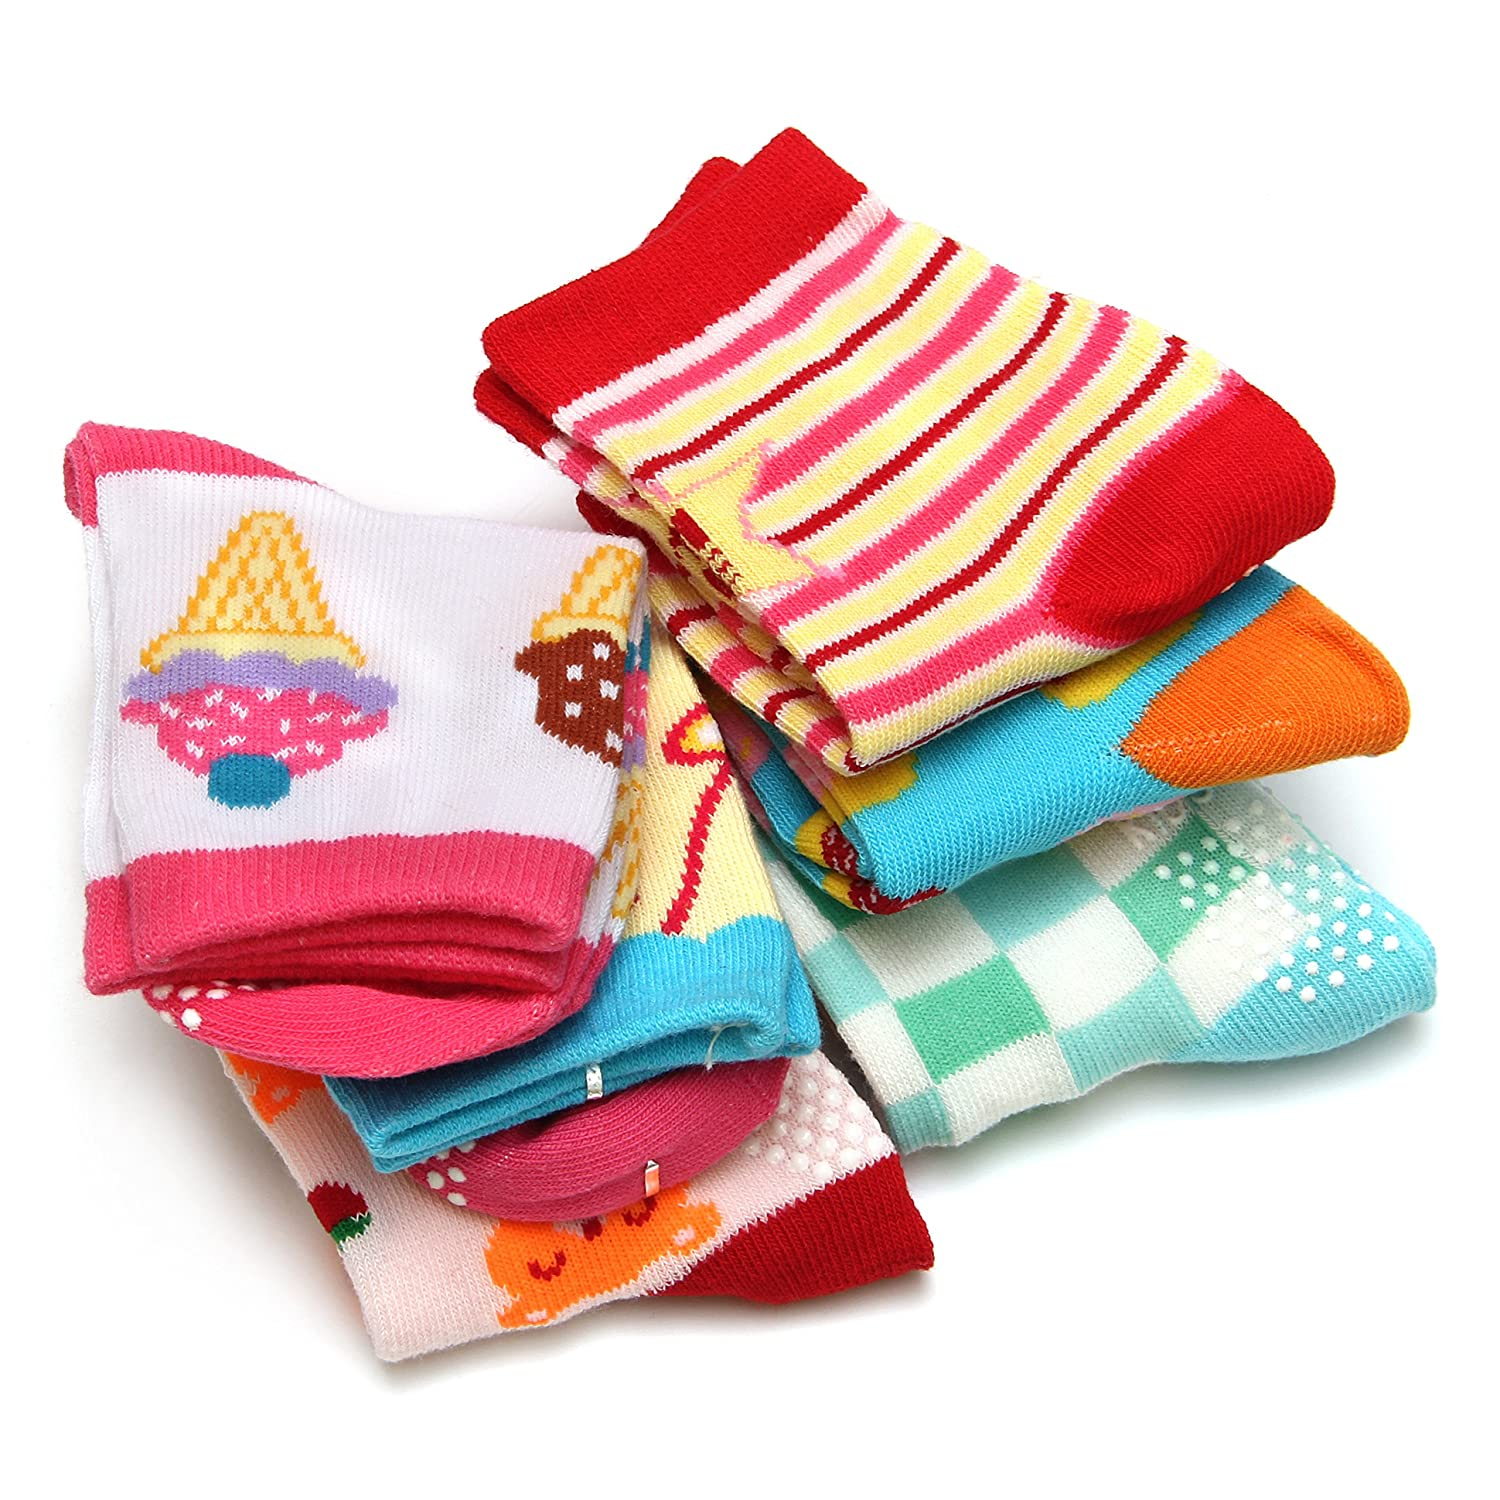 ShoppeWatch 12 Pairs Baby Toddler Socks with Grips Anti-Slip Non-Skid for Kids Babies Unisex 2T and 3T Walkers BBSK42G